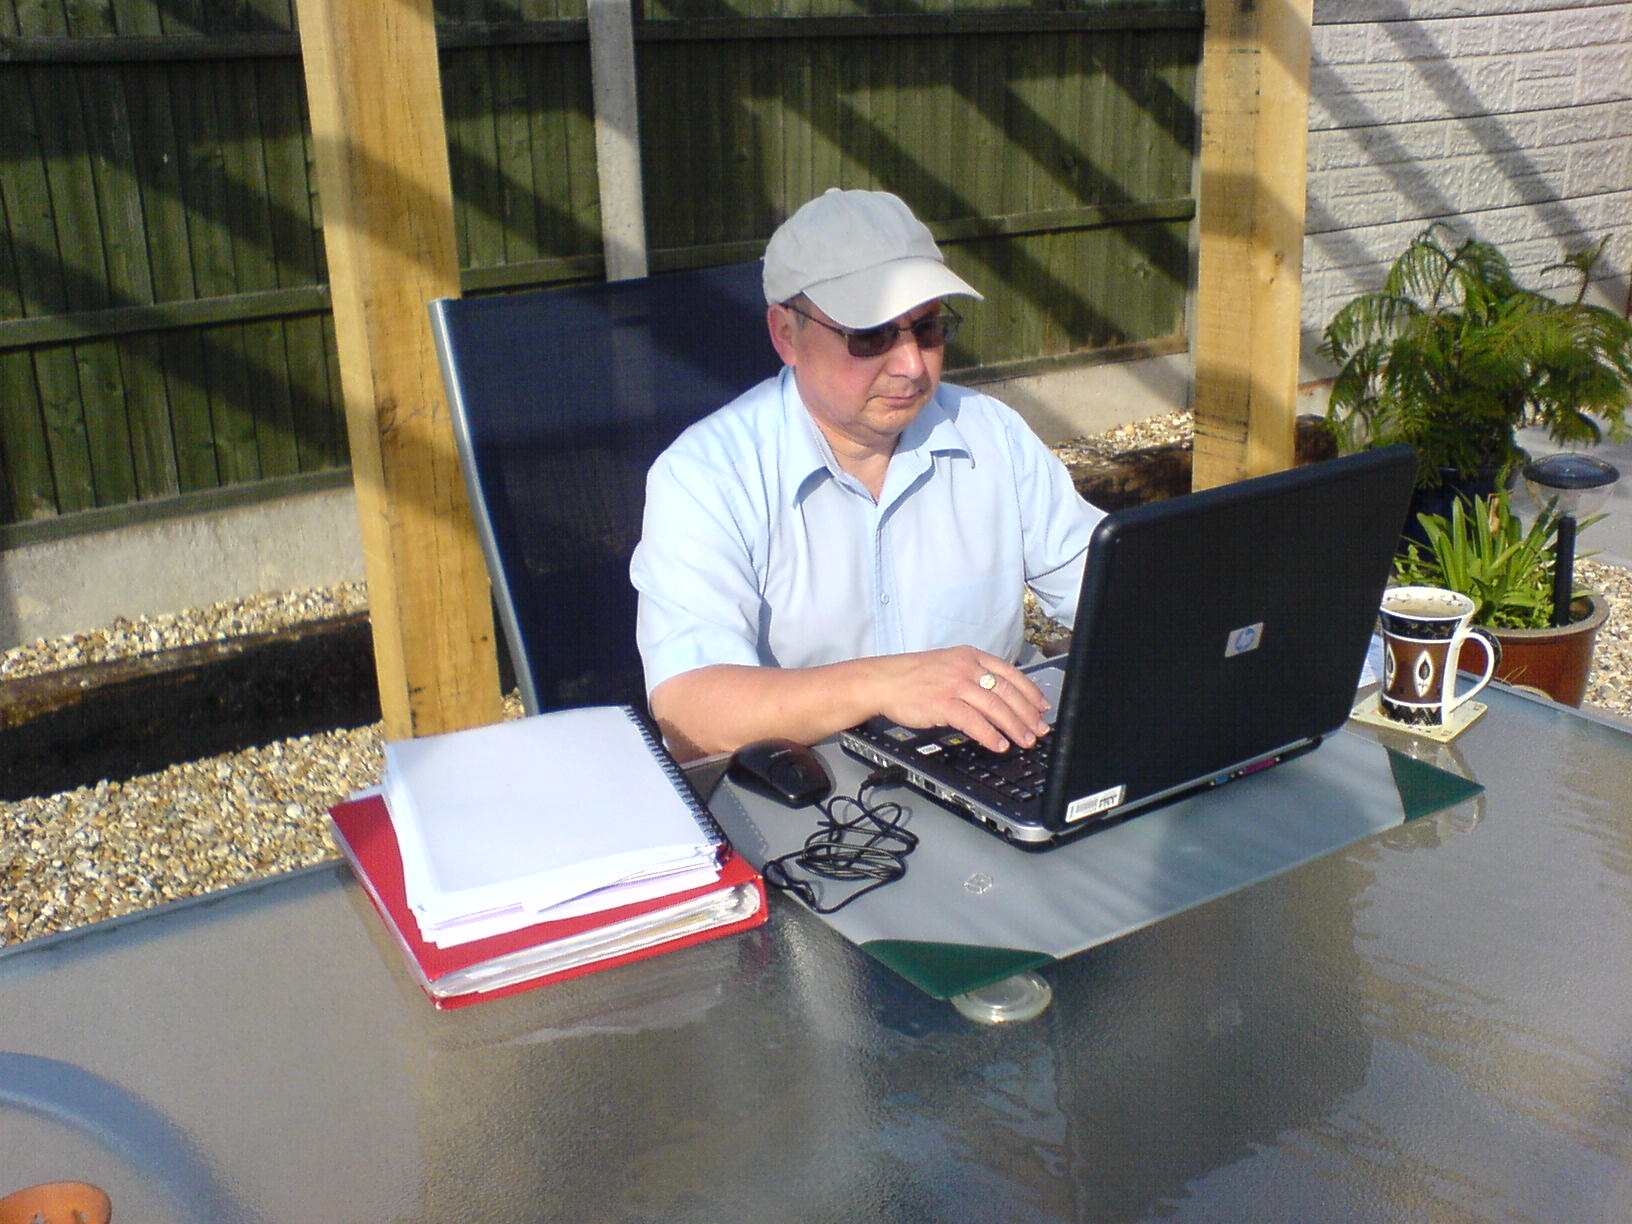 03-09-05 Jim on Laptop in garden